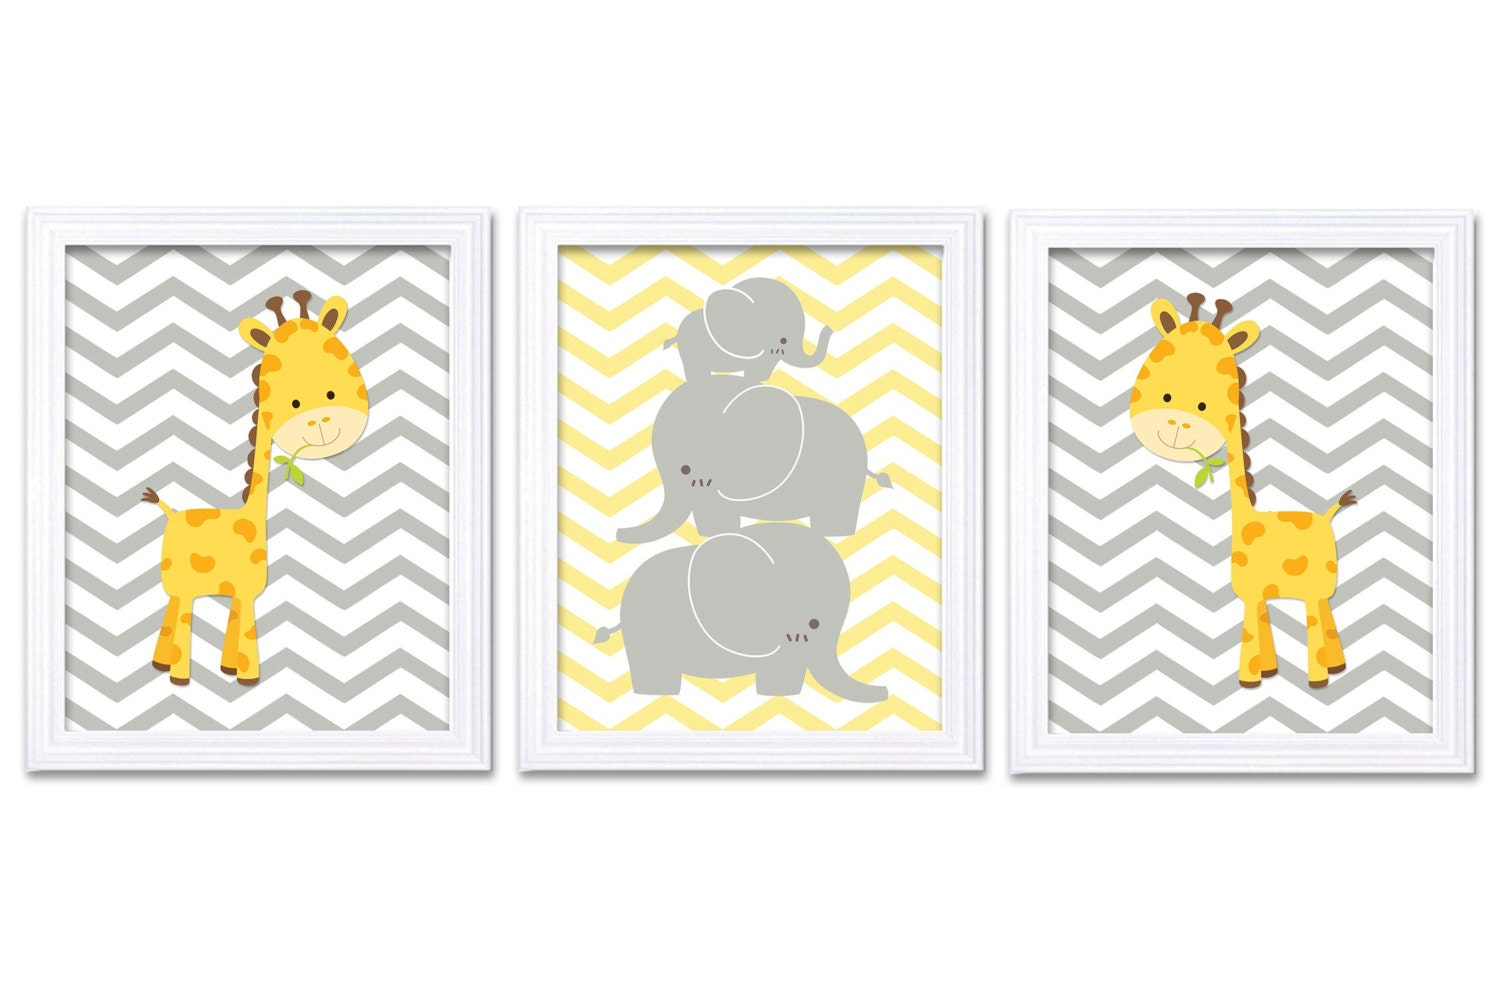 Giraffe Elephant Nursery Wall Decor Set of 3 Prints Yellow Grey Nursery Art Chevron Child Kids Baby